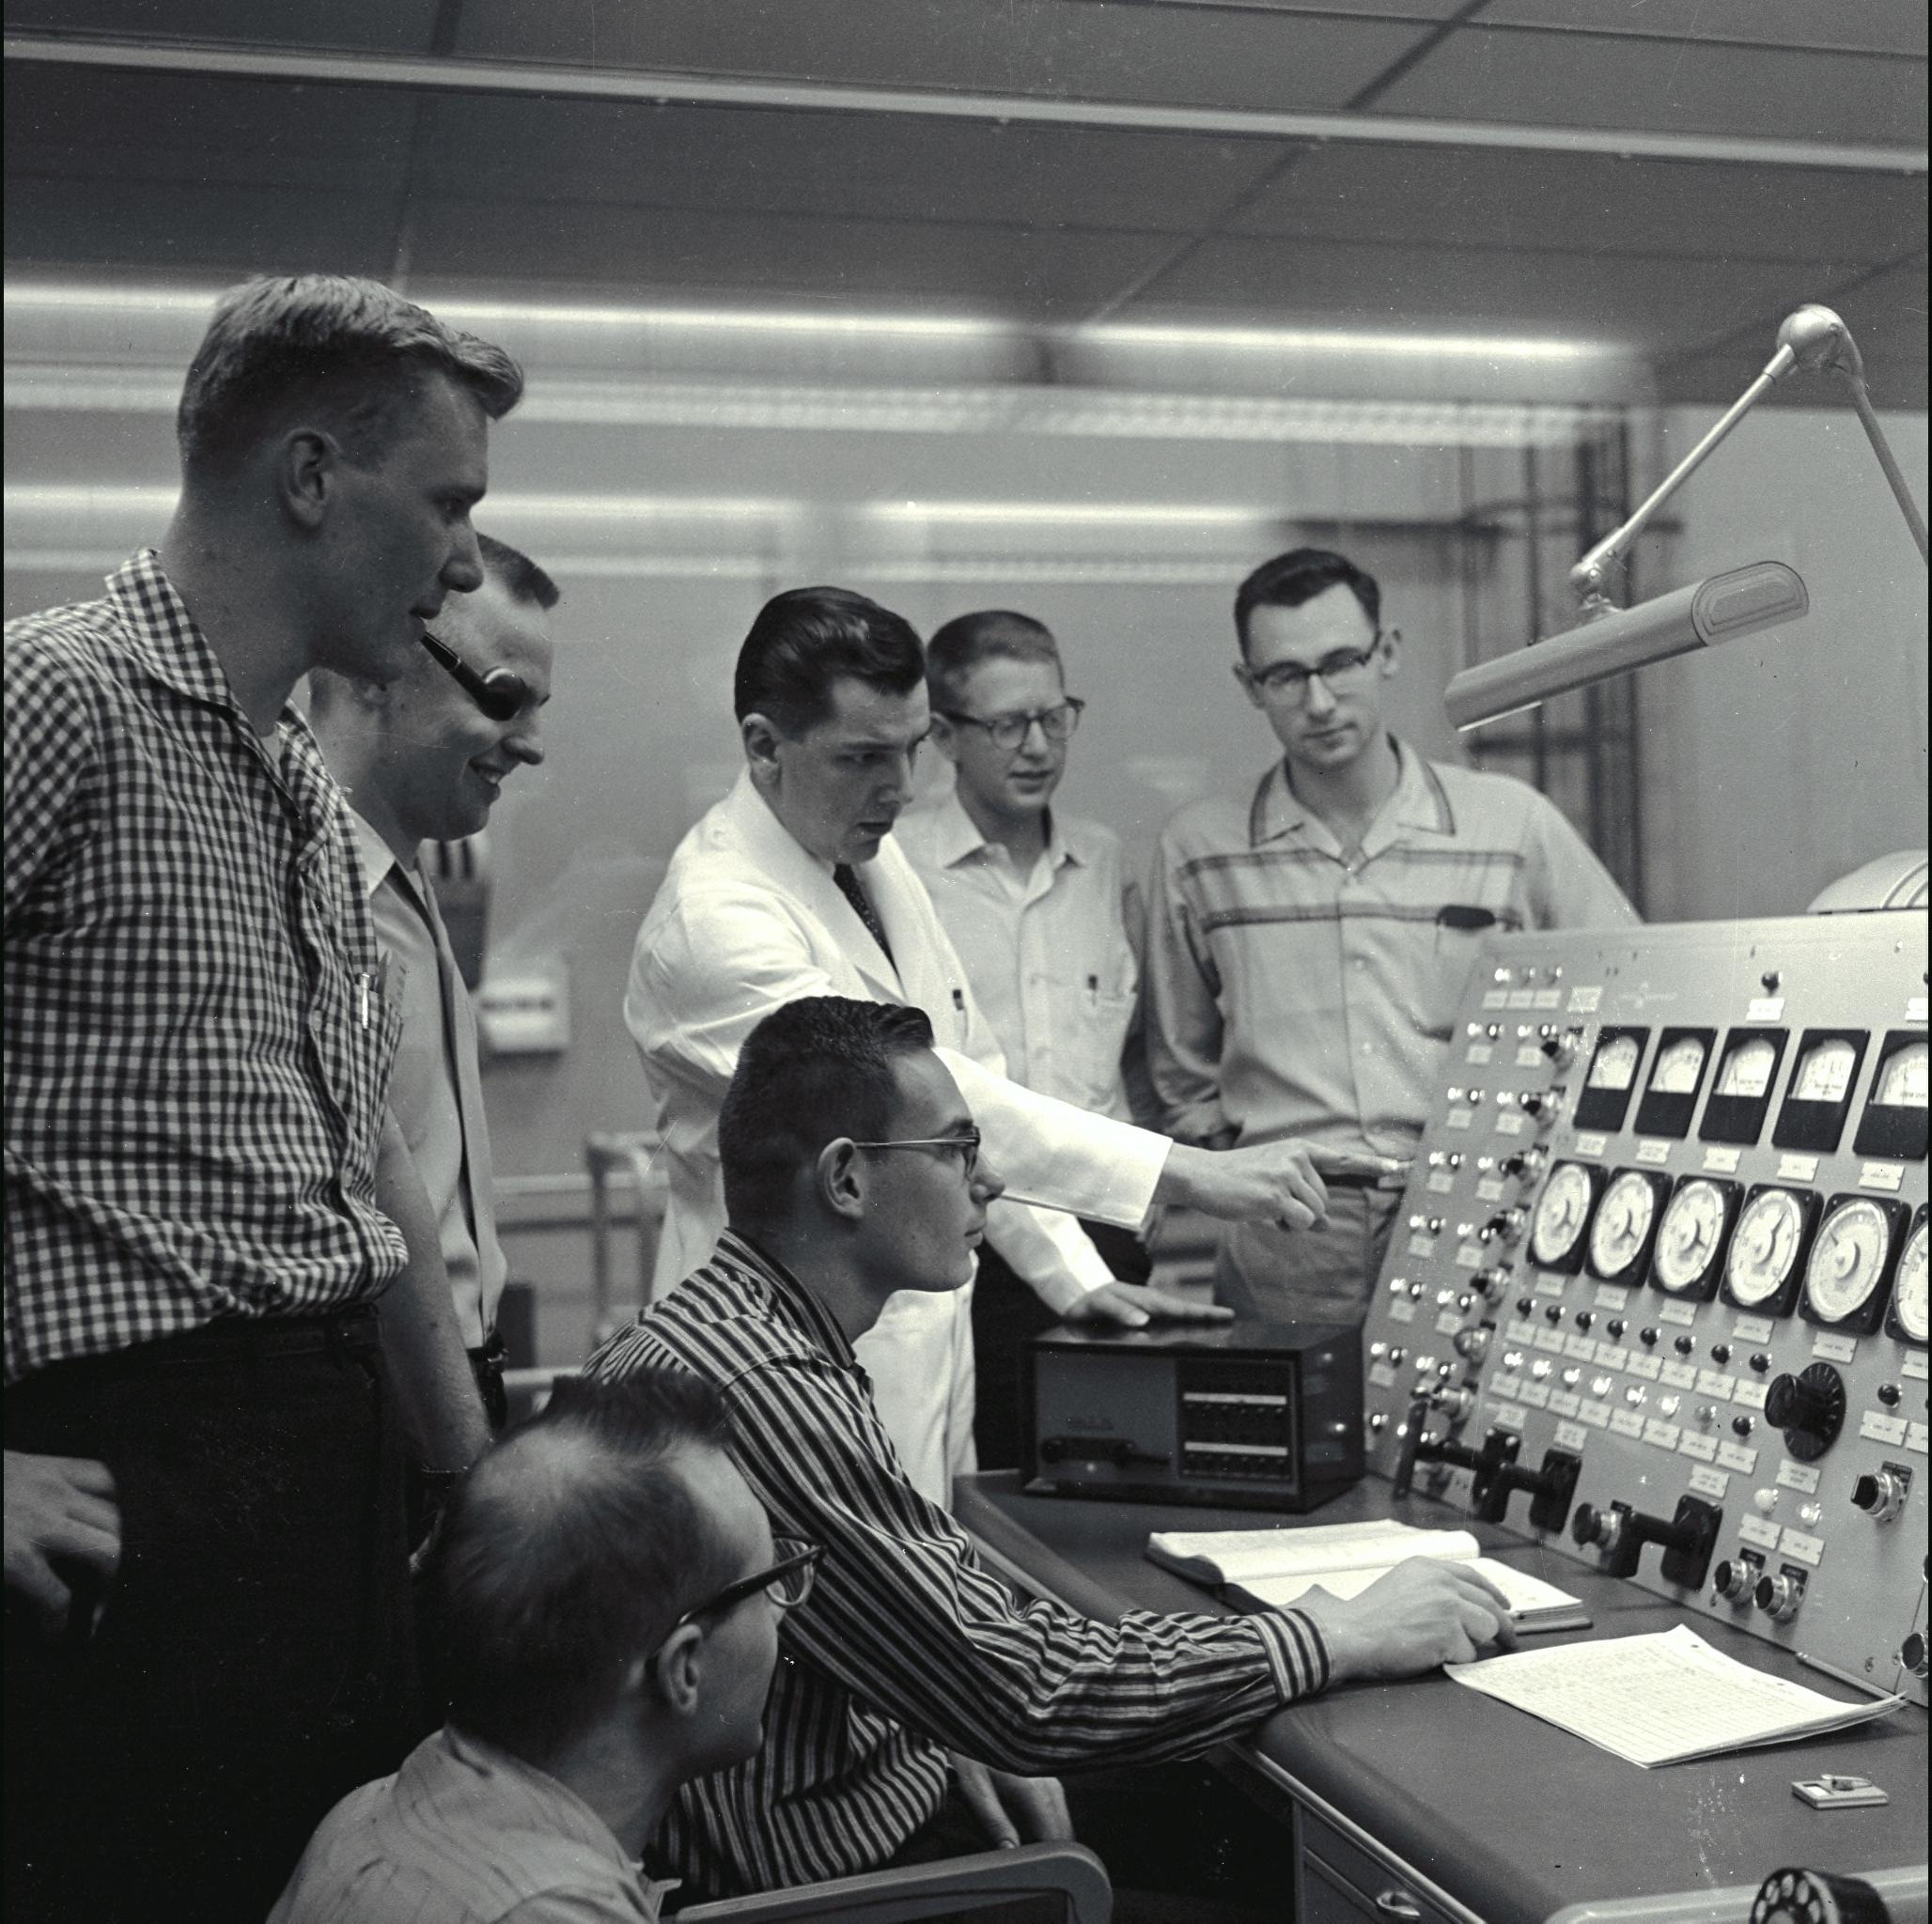 students and a teacher looking over a a large panel with dials and knobs in the late 1950s